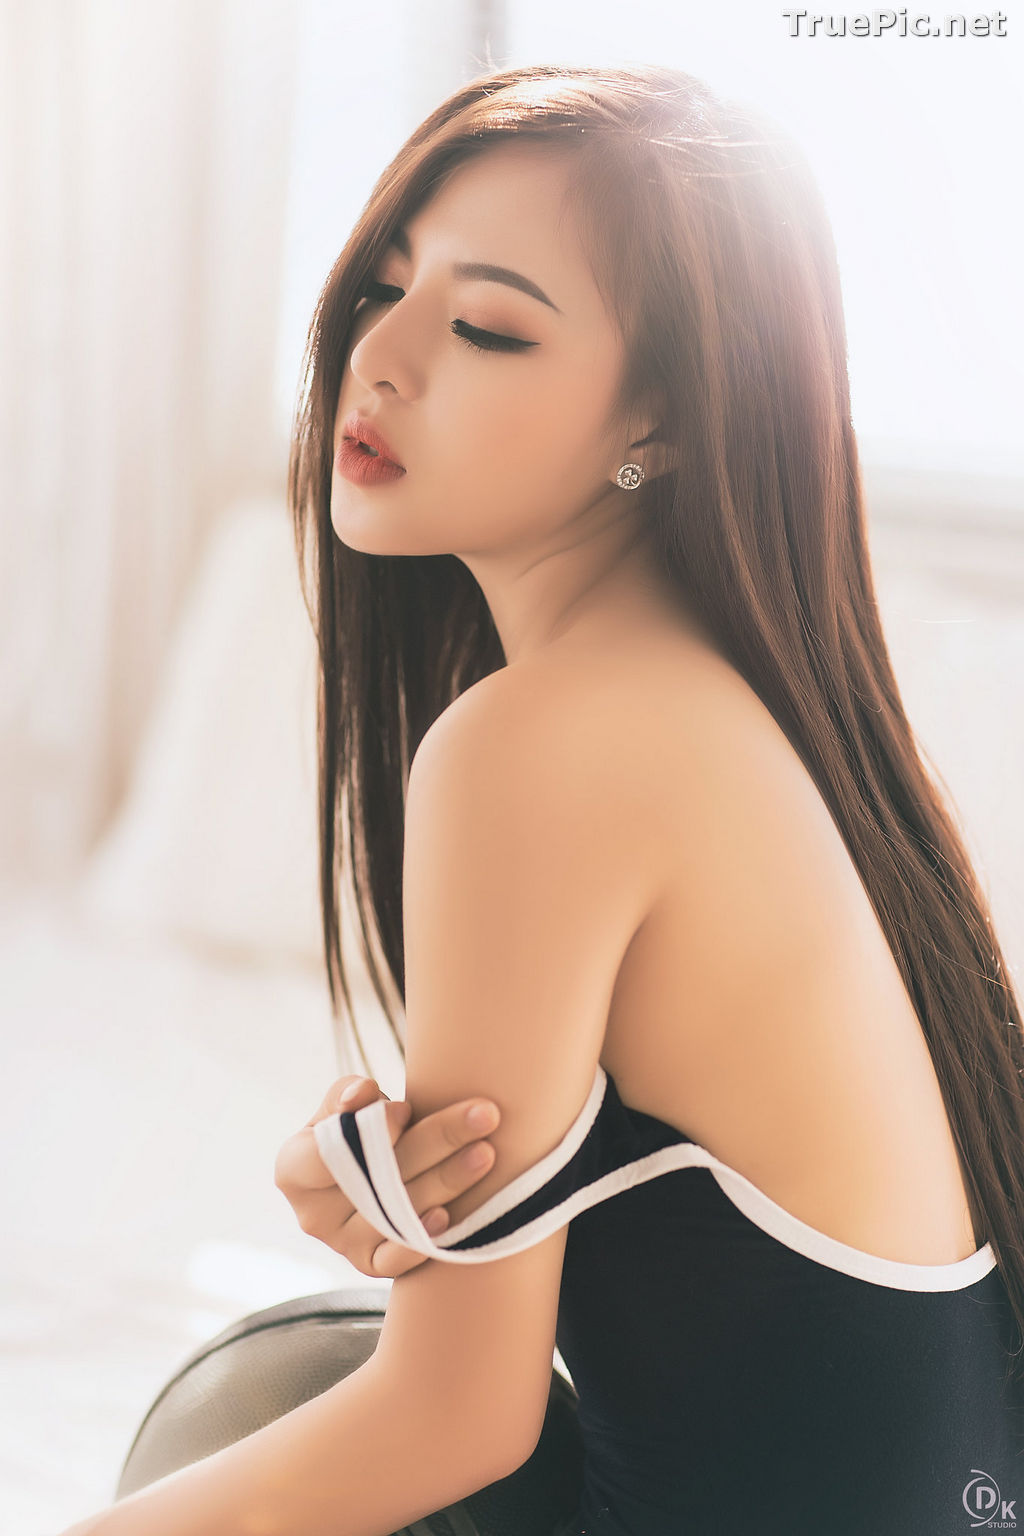 Image The Beauty of Vietnamese Girls – Photo Collection 2020 (#14) - TruePic.net - Picture-7